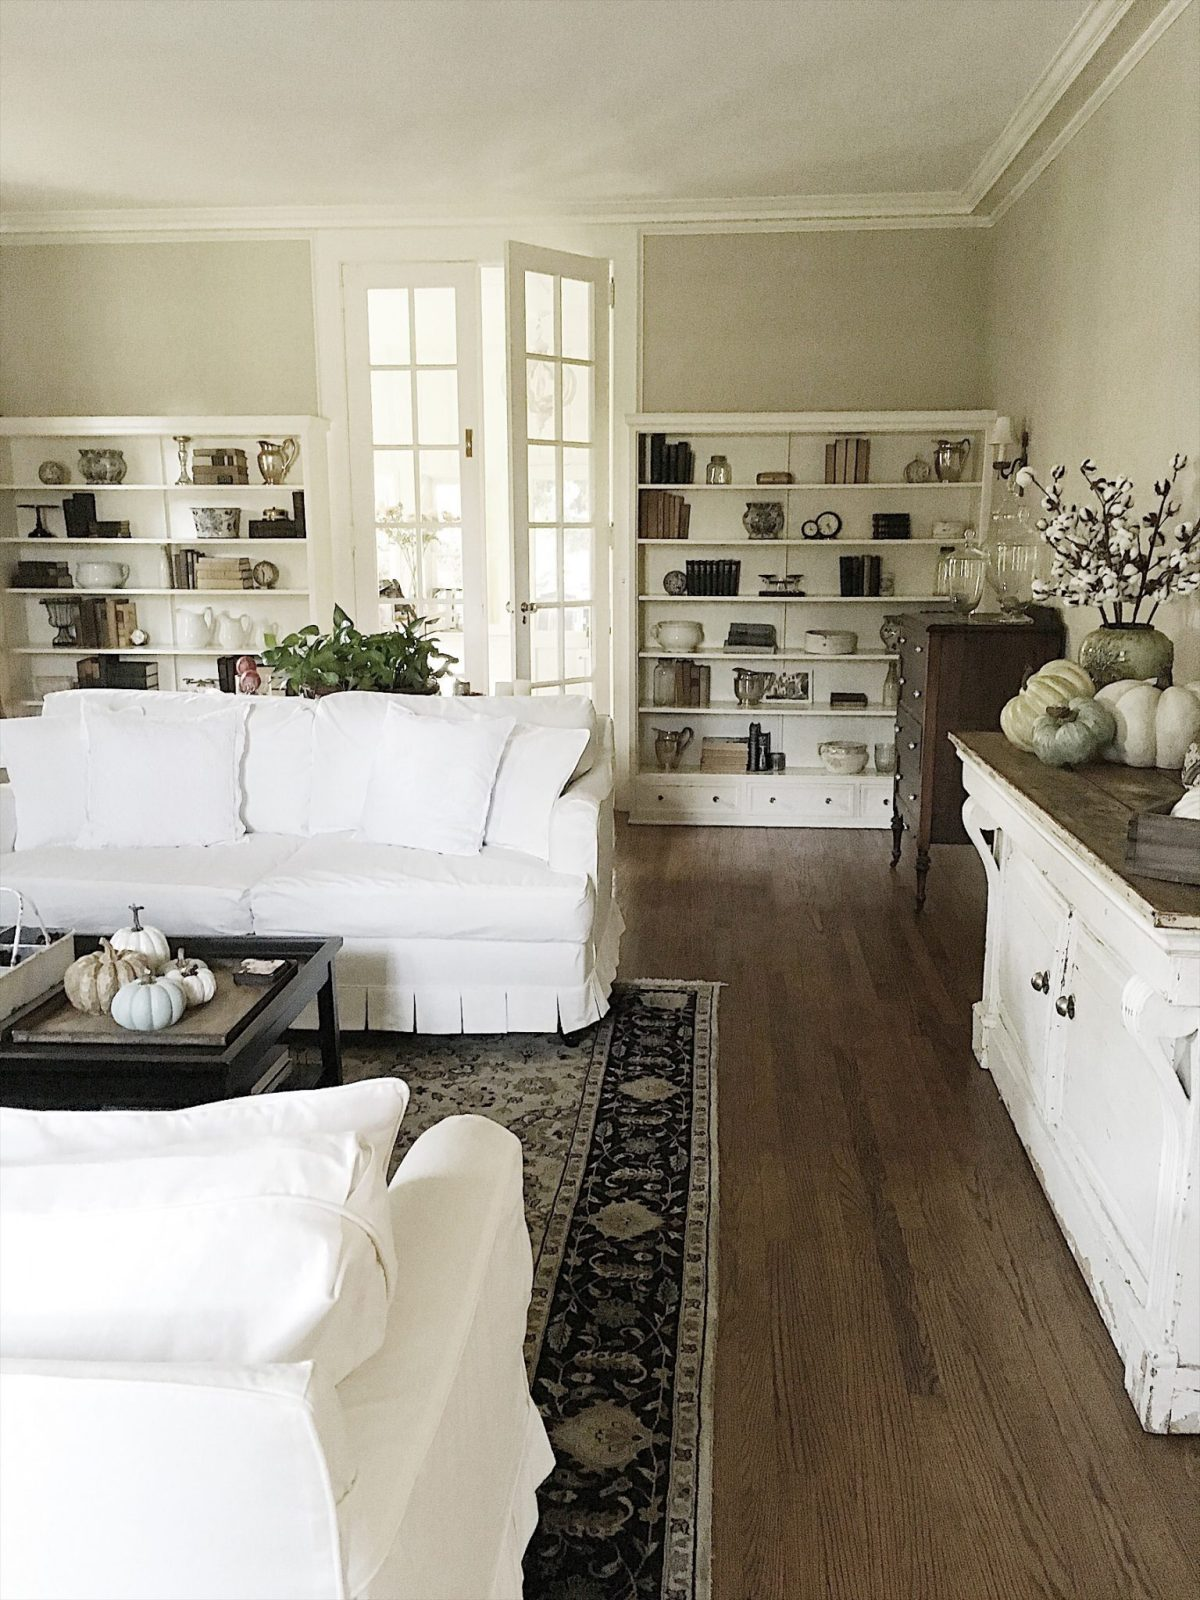 Restyling My Living Room Bookcases - My 100 Year Old Home